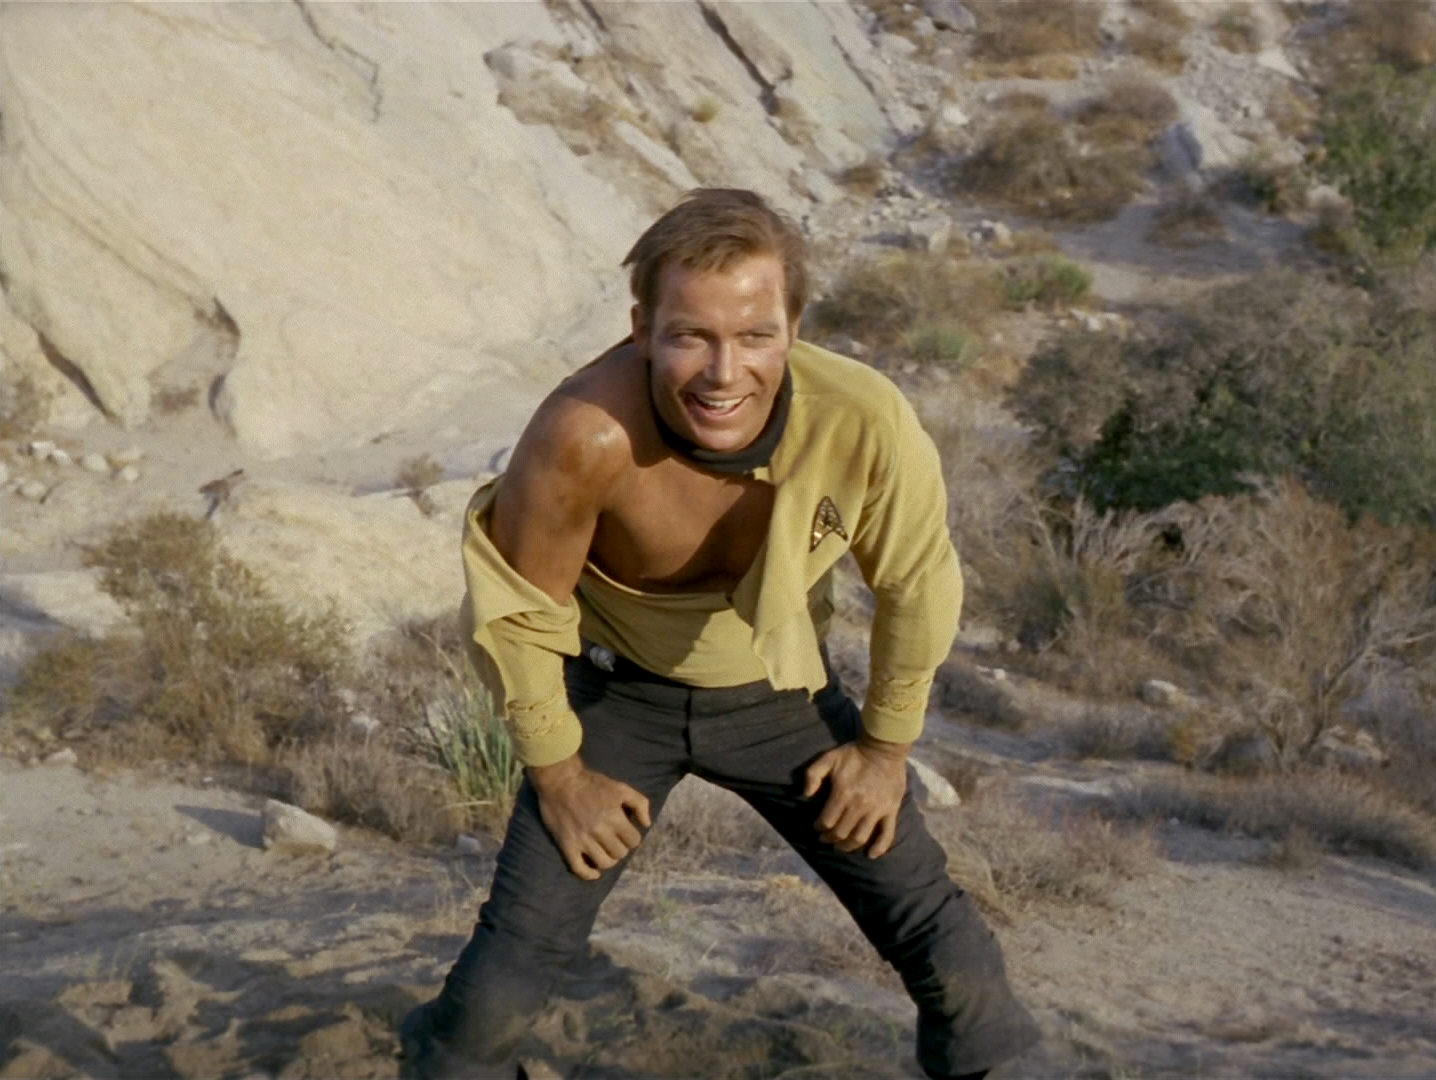 William shatner describes his first gay new york encounter